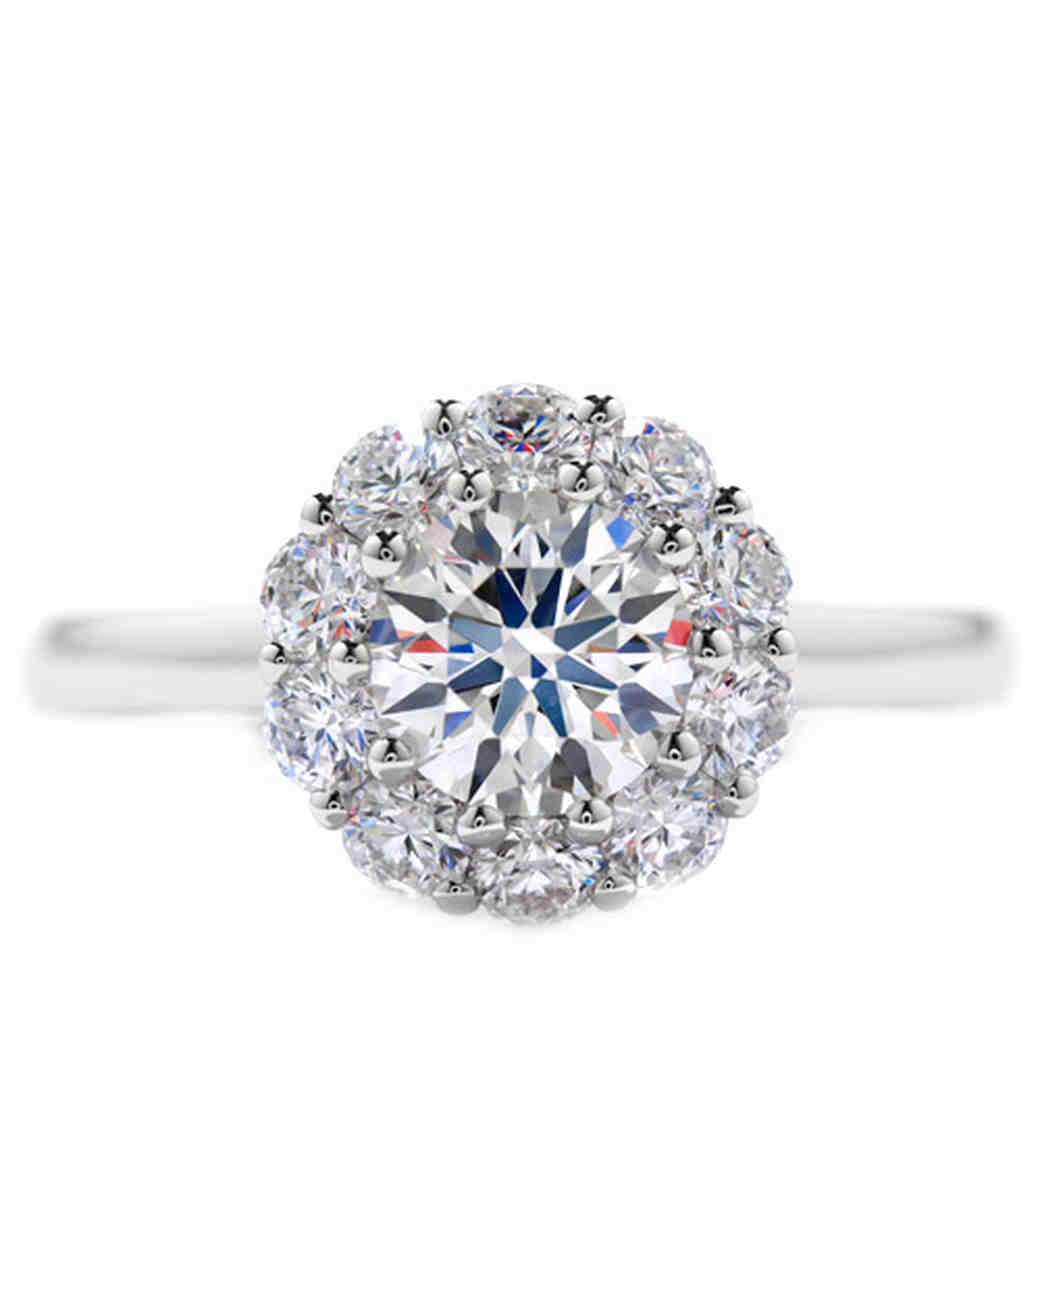 Rounddiamond Engagement Ring From Hearts On Fire